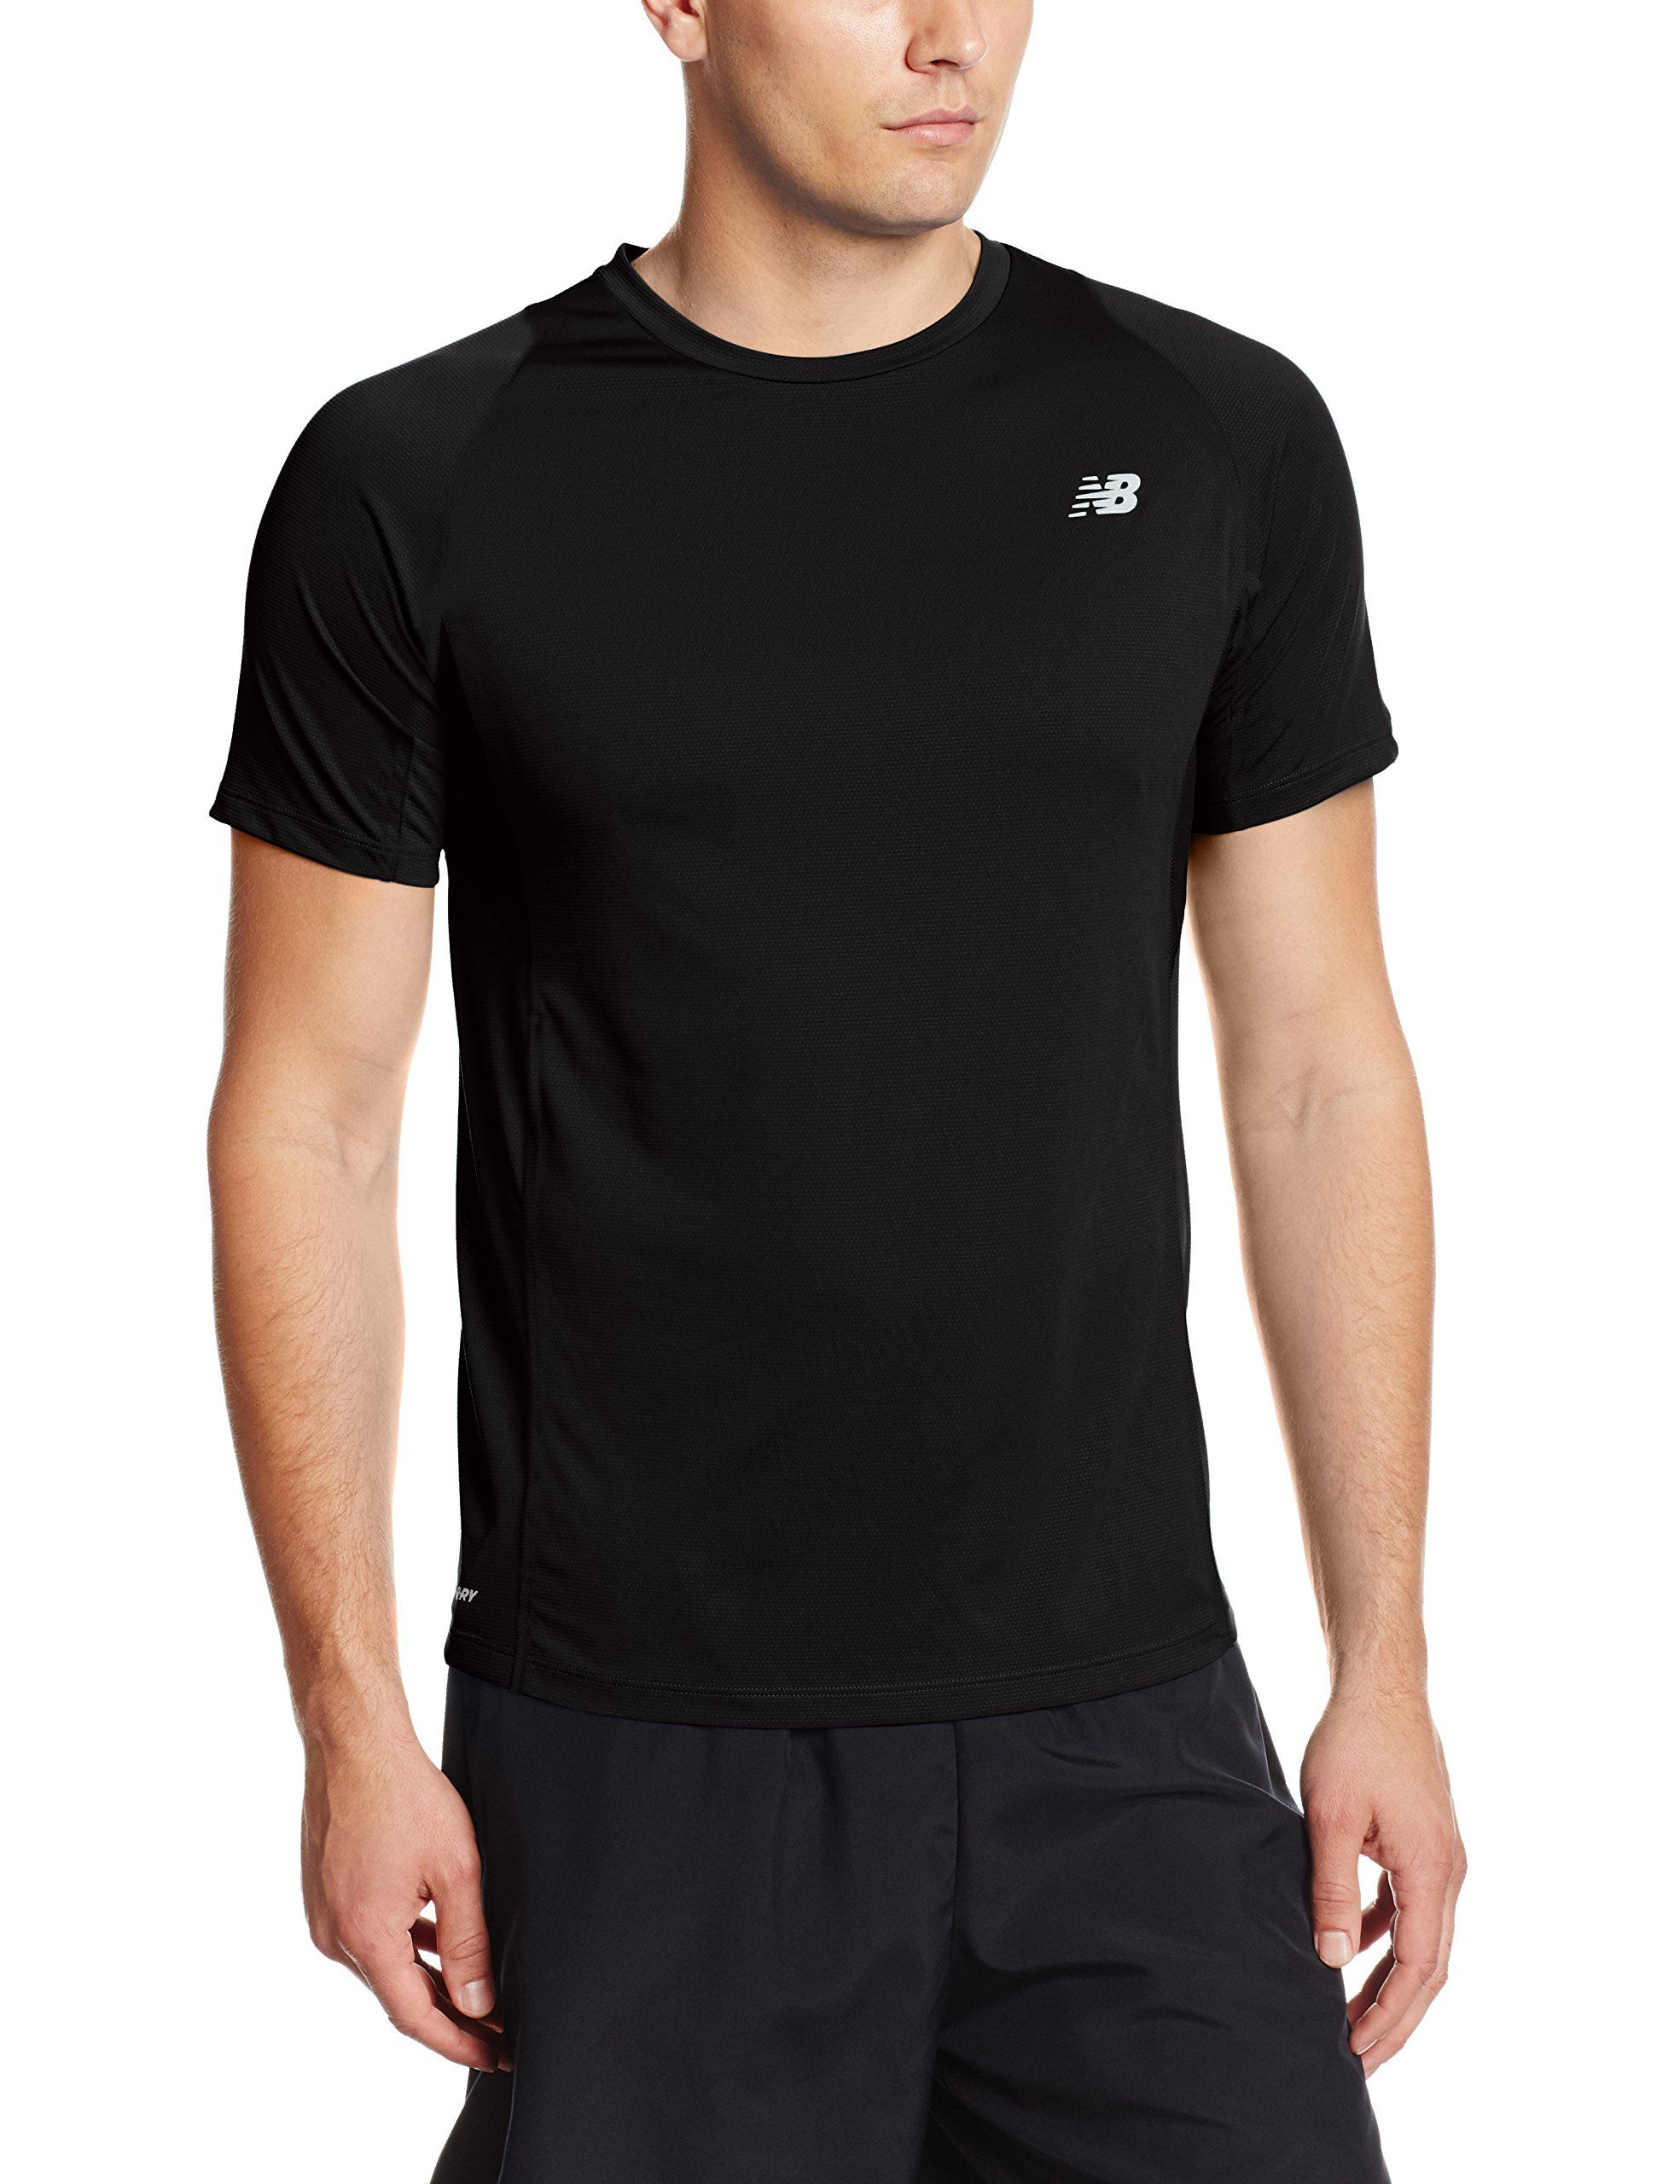 b98c46c1 New Balance Men's Accelerate Short Sleeve Top, Black, Small. NB Dry ...